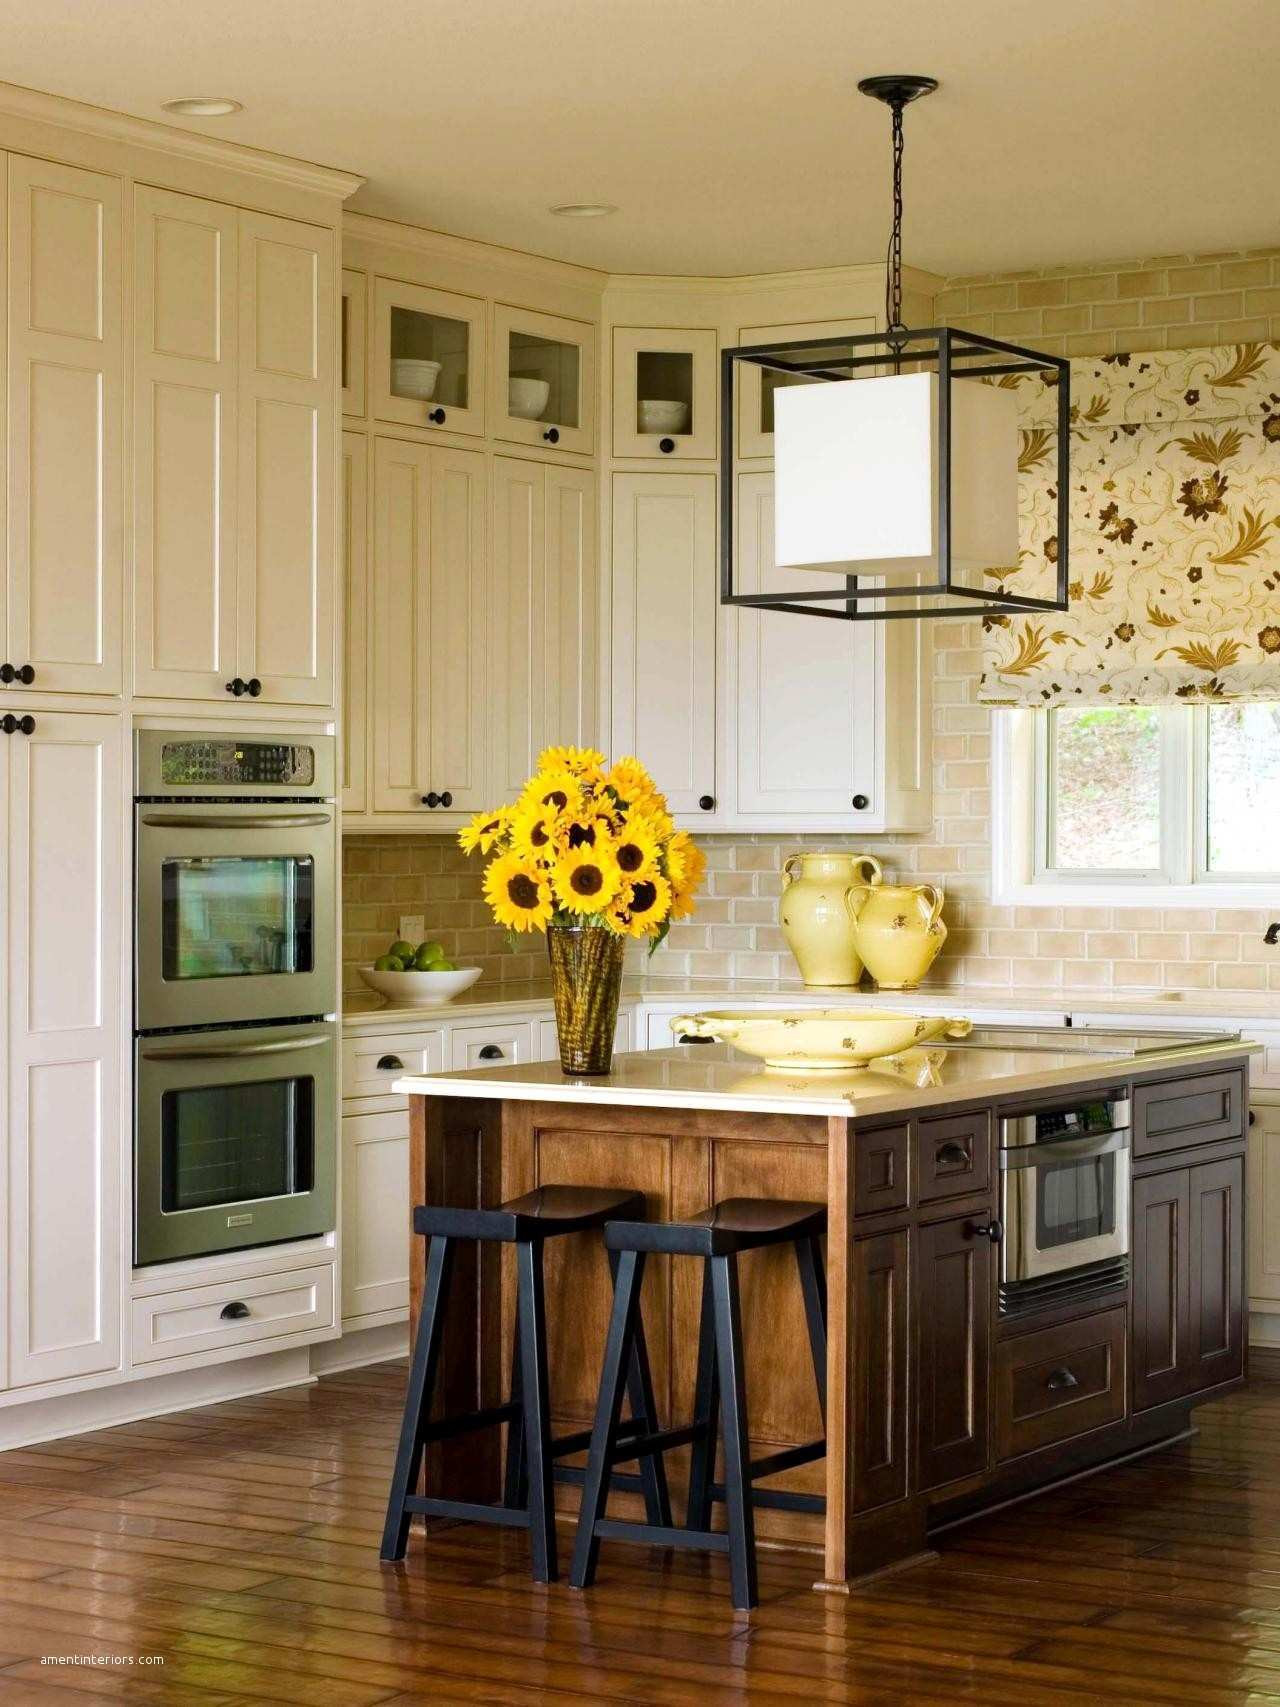 how expensive to refinish hardwood floors of how much do kitchen cabinets cost styling up your refinish kitchen throughout how much do kitchen cabinets cost styling up your refinish kitchen cabinets ideas best of cabinets refacing 0d design